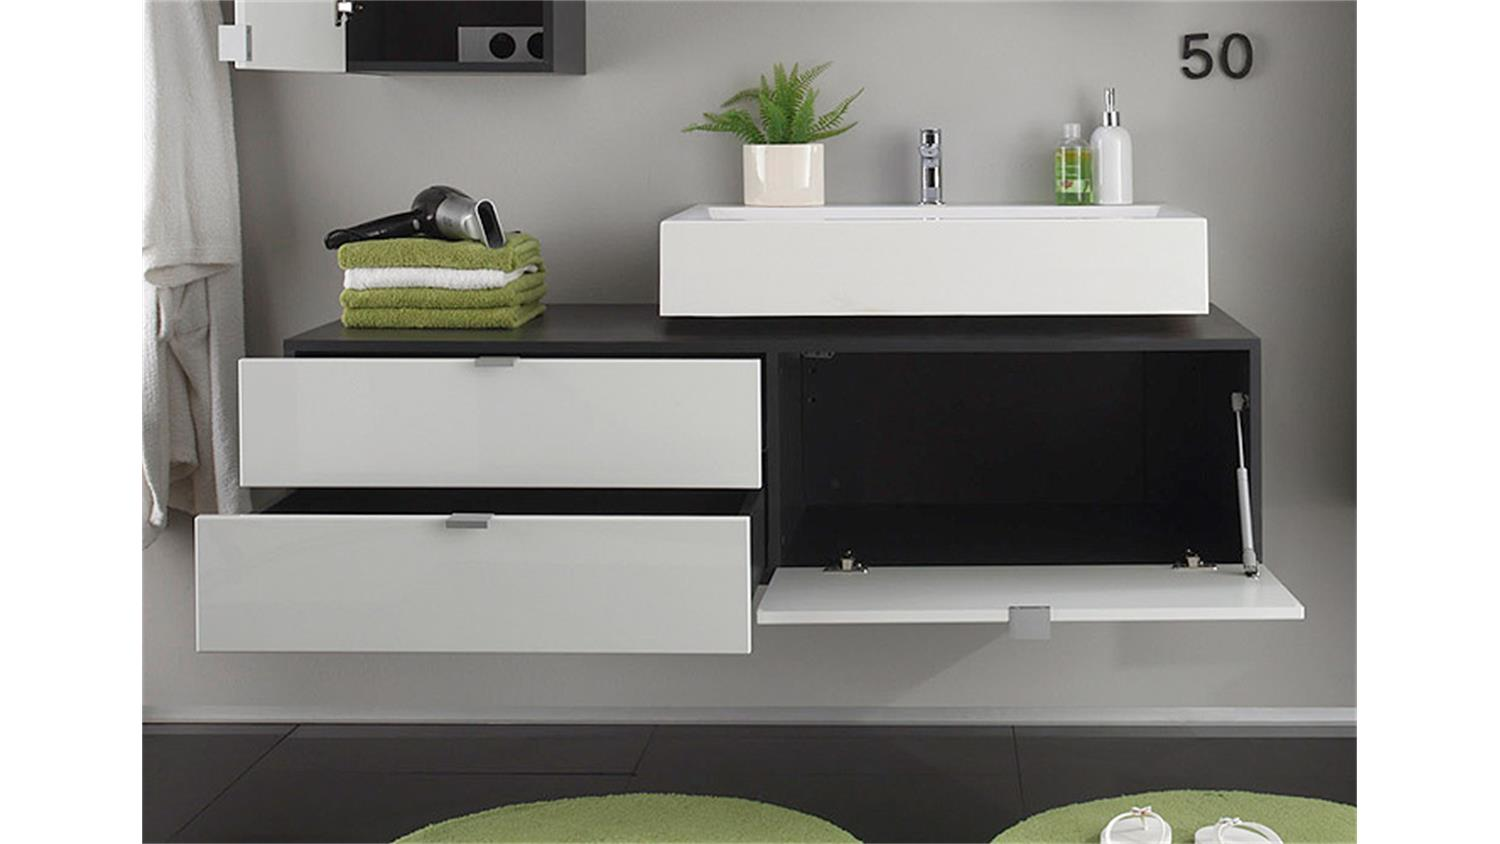 unterschrank beach badm bel wei hochglanz grau mit becken. Black Bedroom Furniture Sets. Home Design Ideas